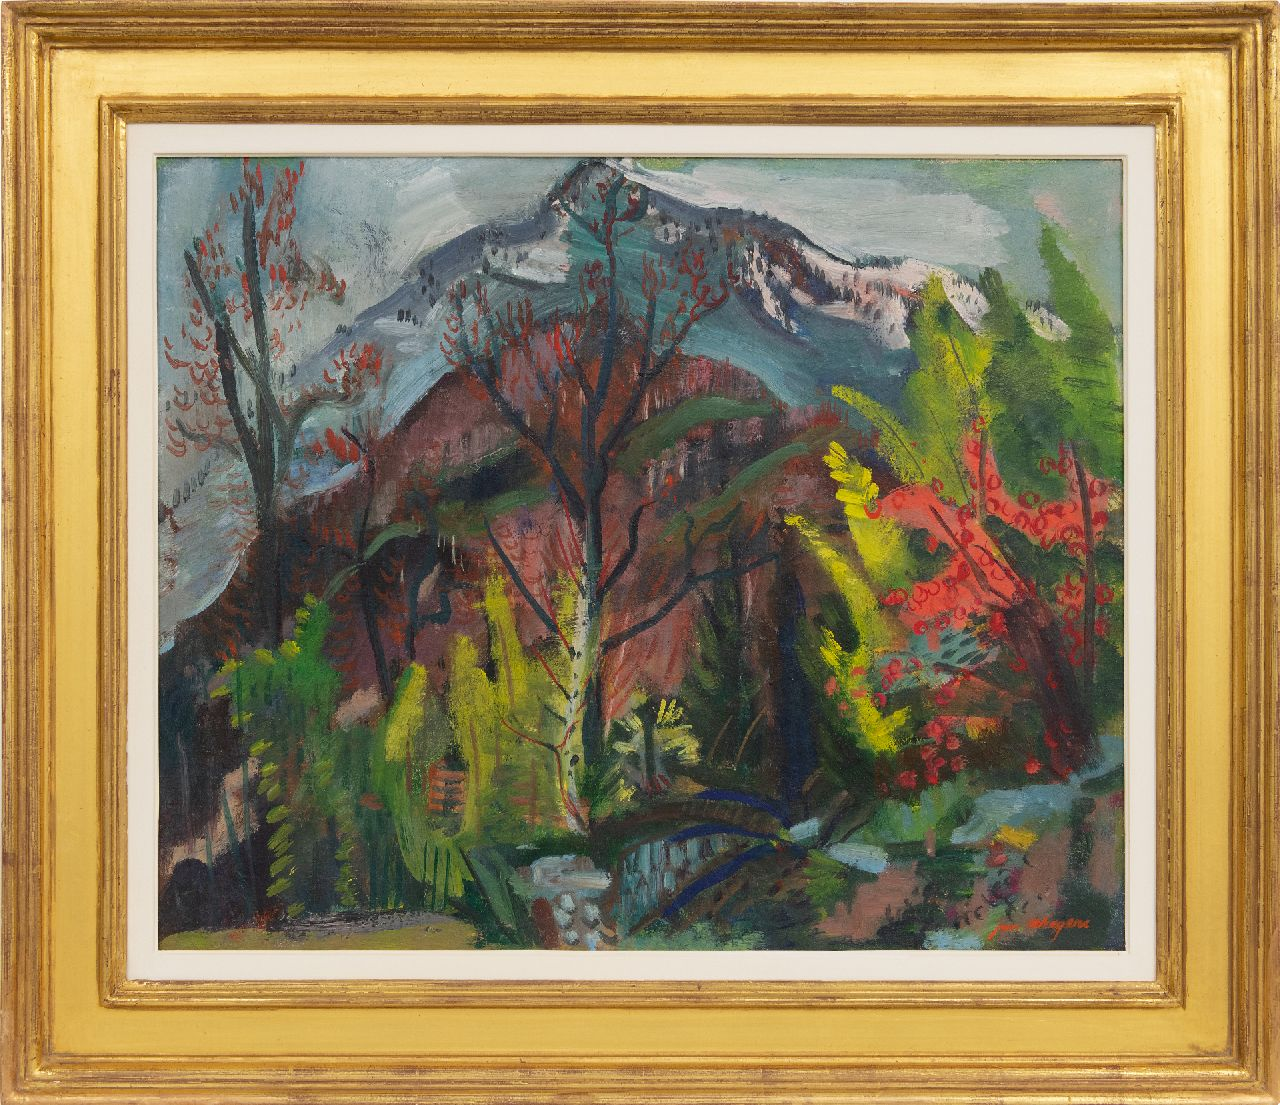 Wiegers J.  | Jan Wiegers | Paintings offered for sale | Garden in Ticino, wax paint on canvas 50.6 x 61.7 cm, signed l.r. and painted ca. 1947-1950